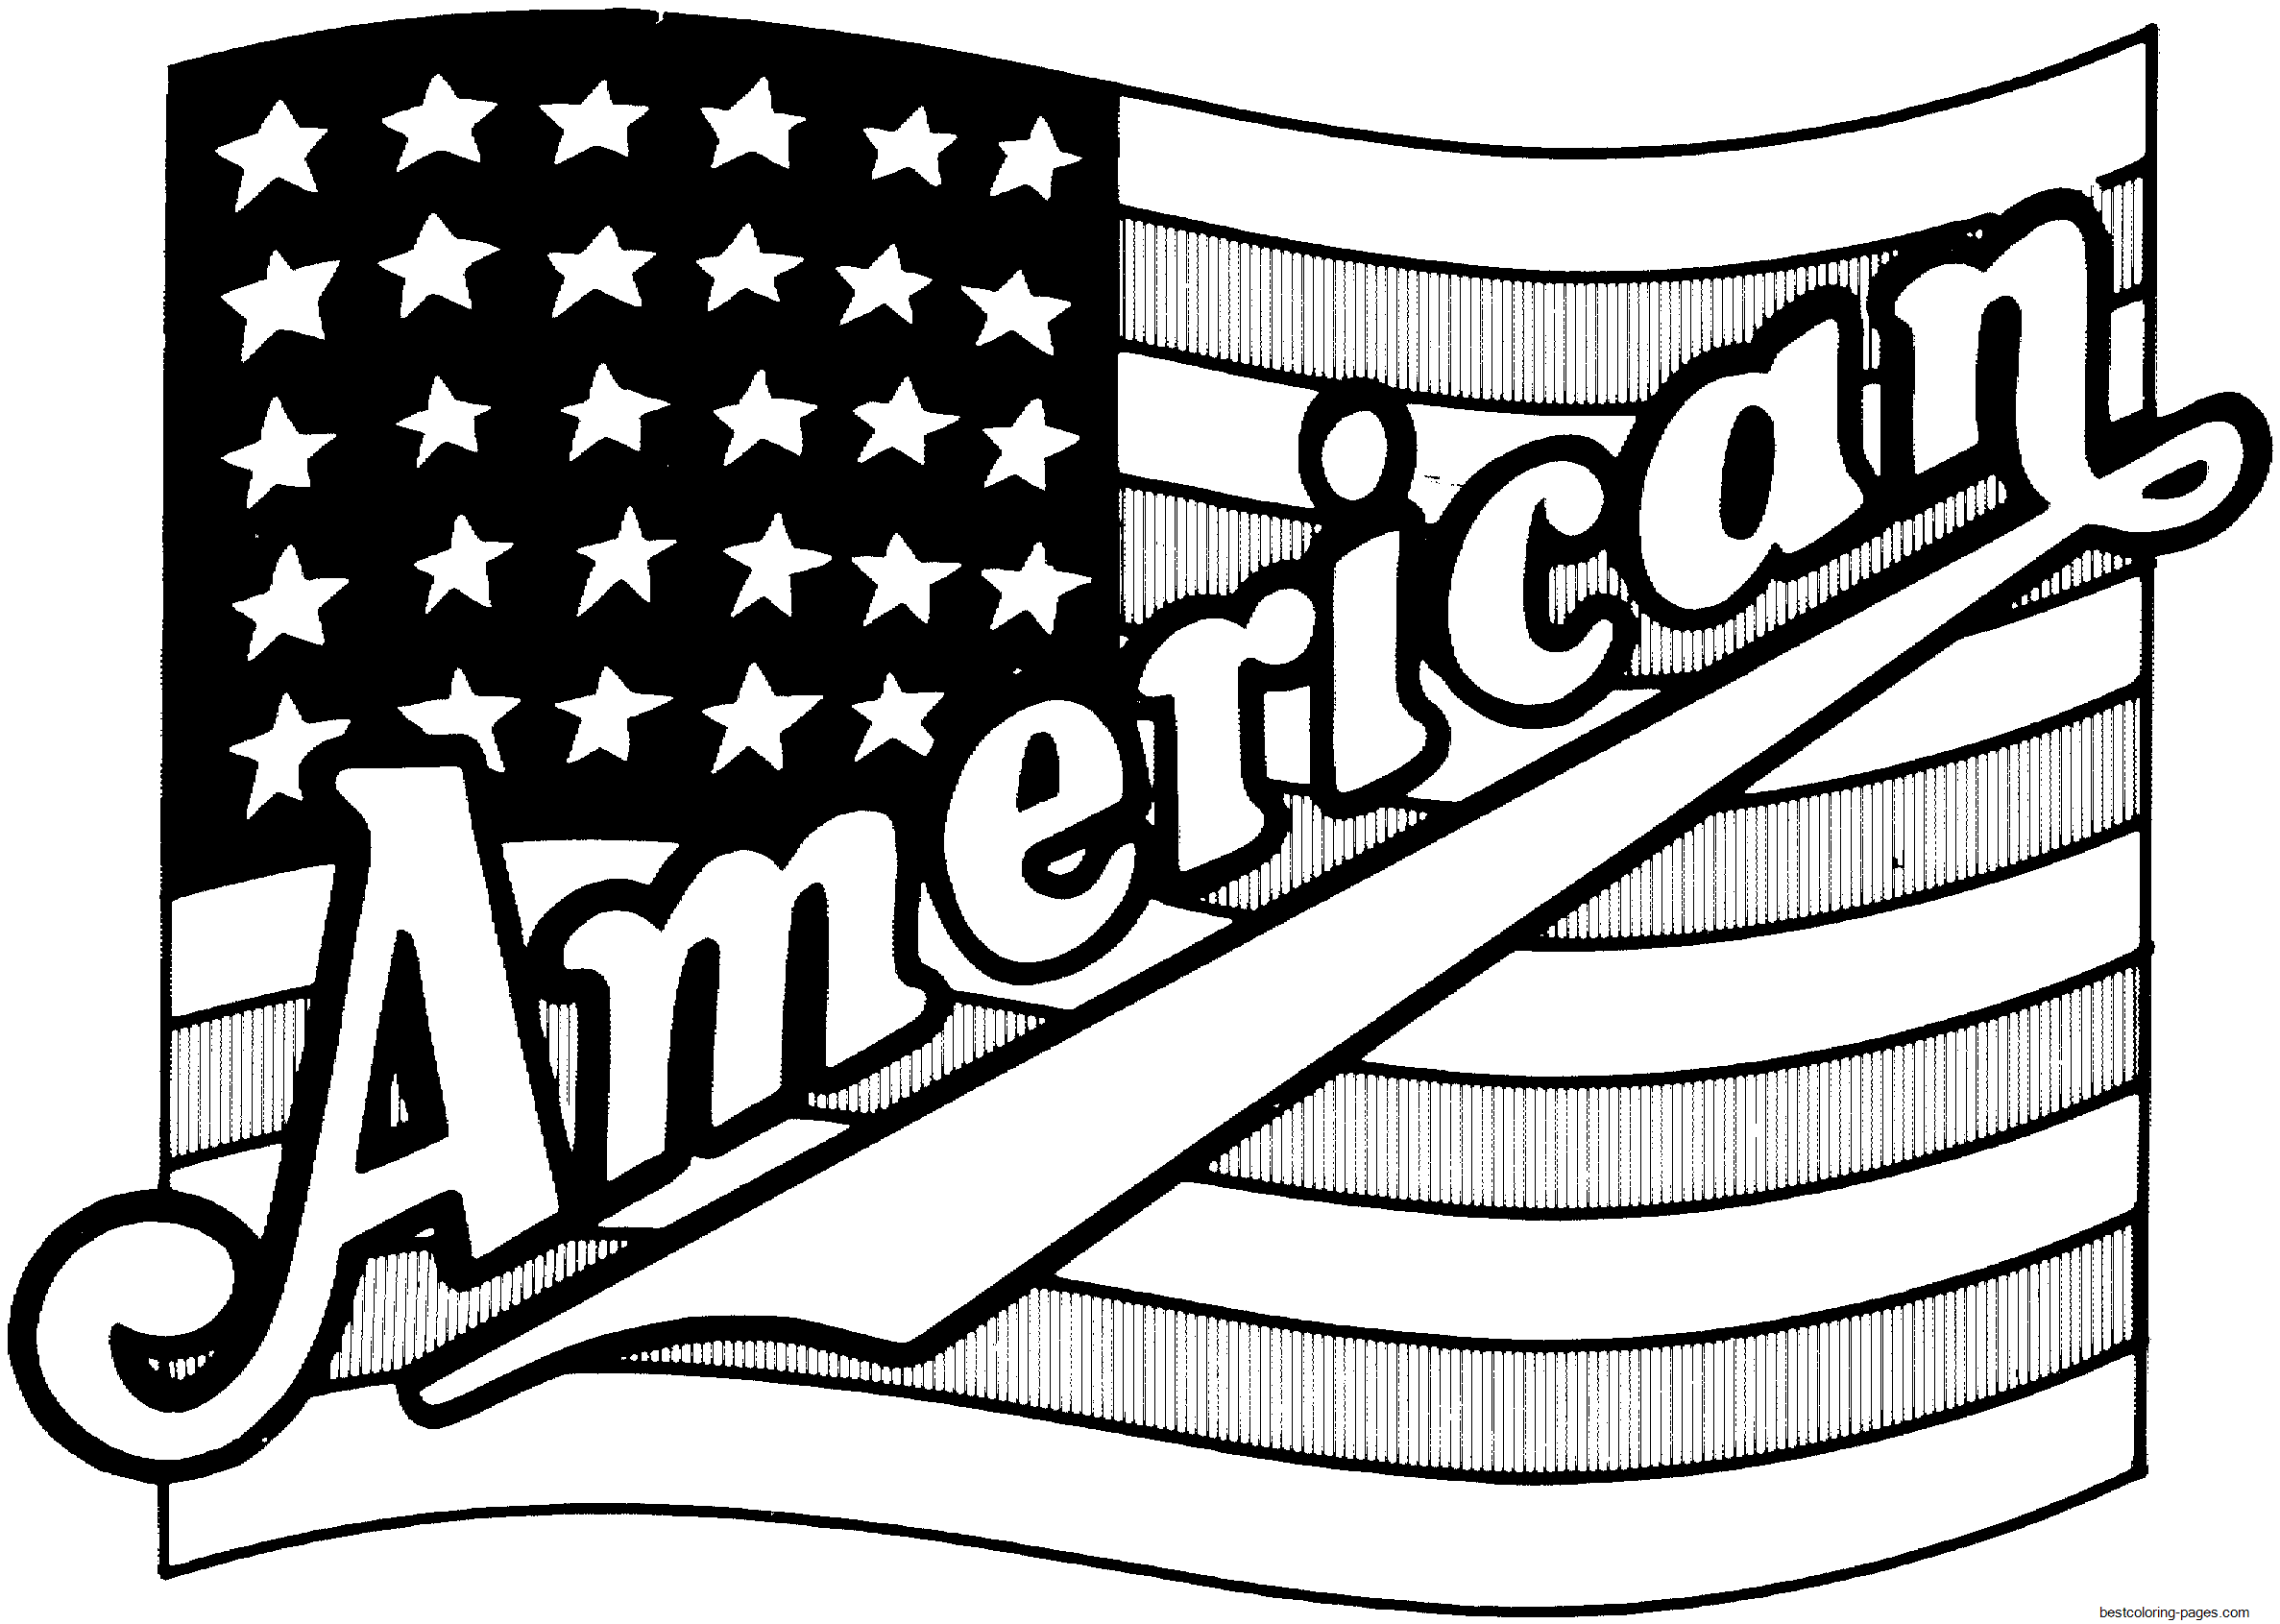 coloring sheet american flag coloring page american flag coloring page for the love of the country coloring page sheet american coloring flag